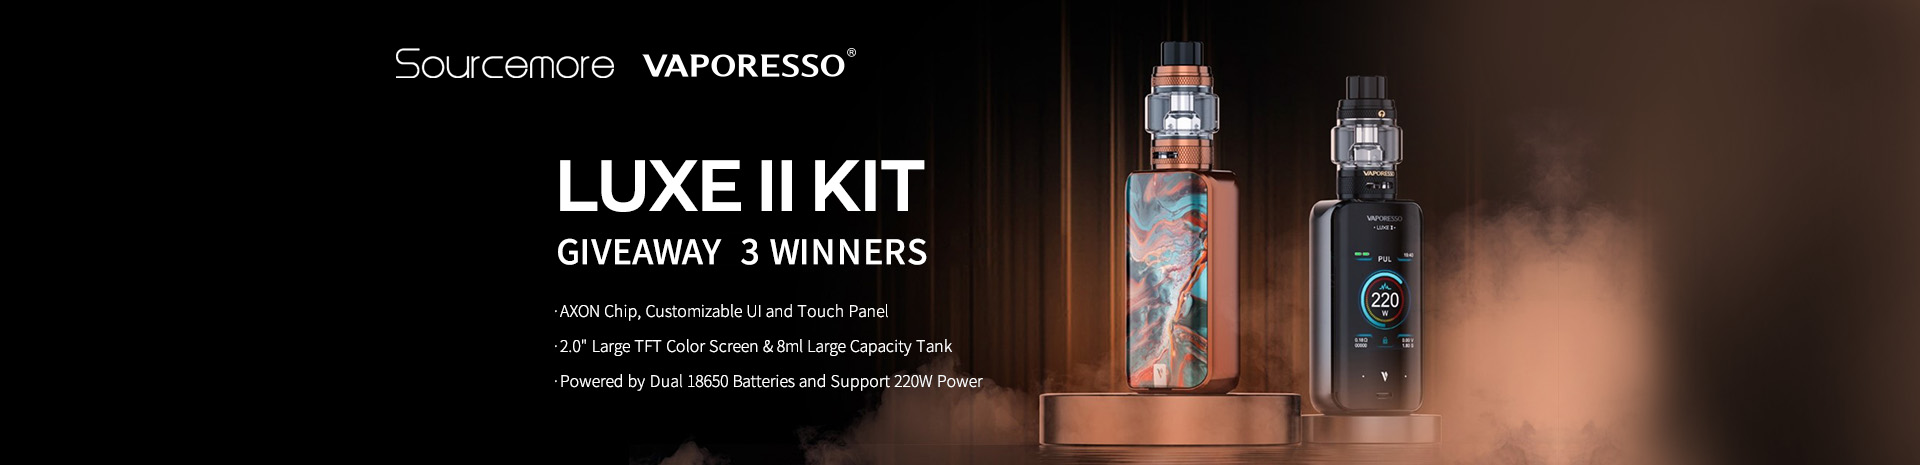 Vaporesso LUXE II Kit Giveaway Banner